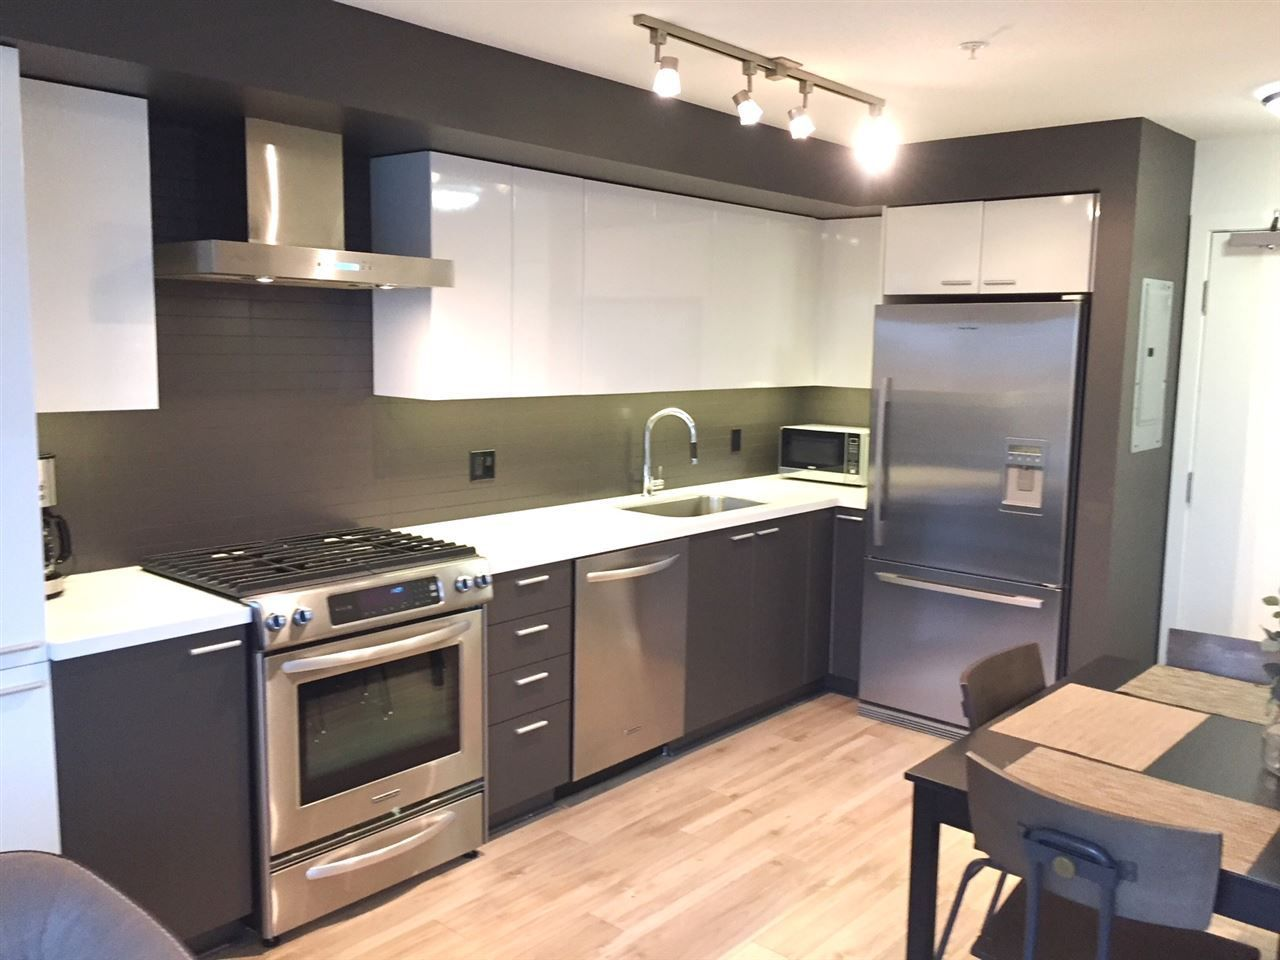 """Main Photo: 310 2888 E 2ND Avenue in Vancouver: Renfrew VE Condo for sale in """"SESAME"""" (Vancouver East)  : MLS®# R2217838"""